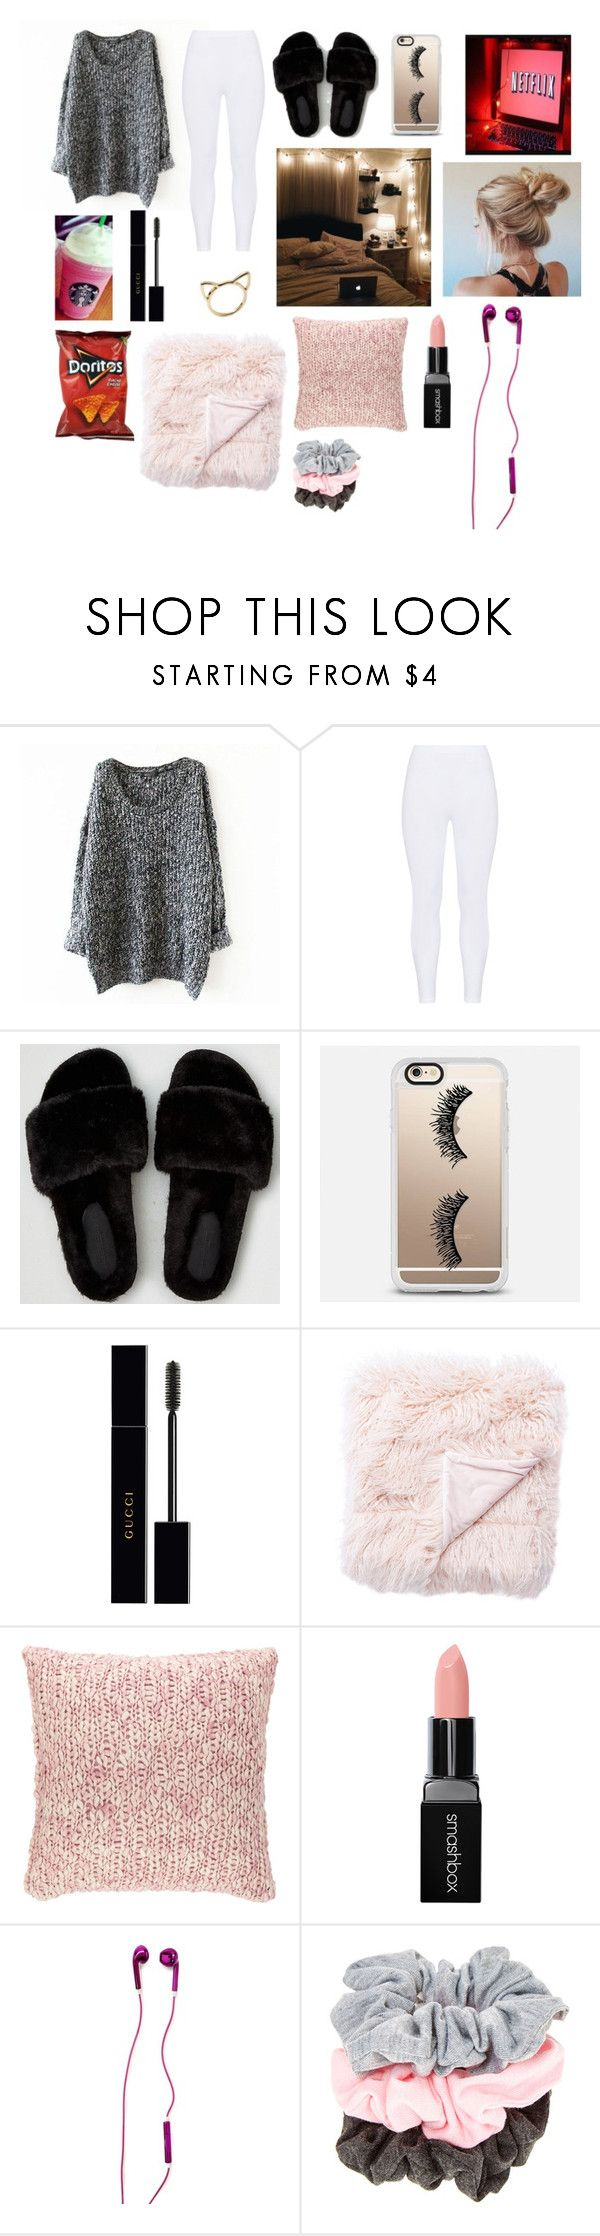 """Comfy • life"" by brielleespinal ❤ liked on Polyvore featuring Gozzip, American Eagle Outfitters, Casetify, Gucci, Jaipur, Pine Cone Hill, Smashbox and Forever 21"